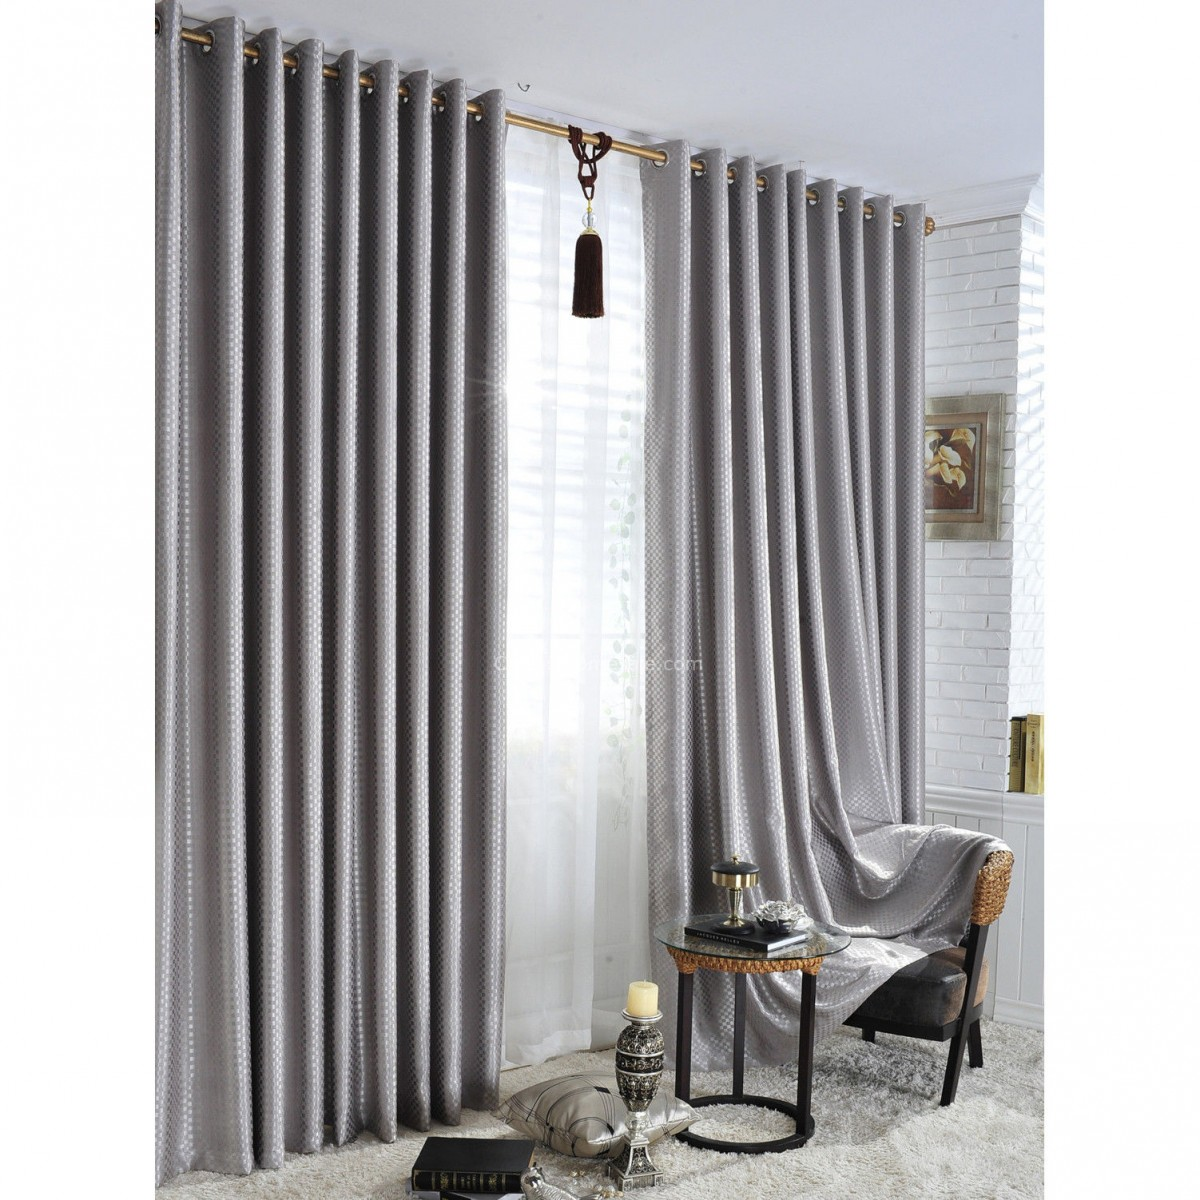 Hotel quality blackout curtains